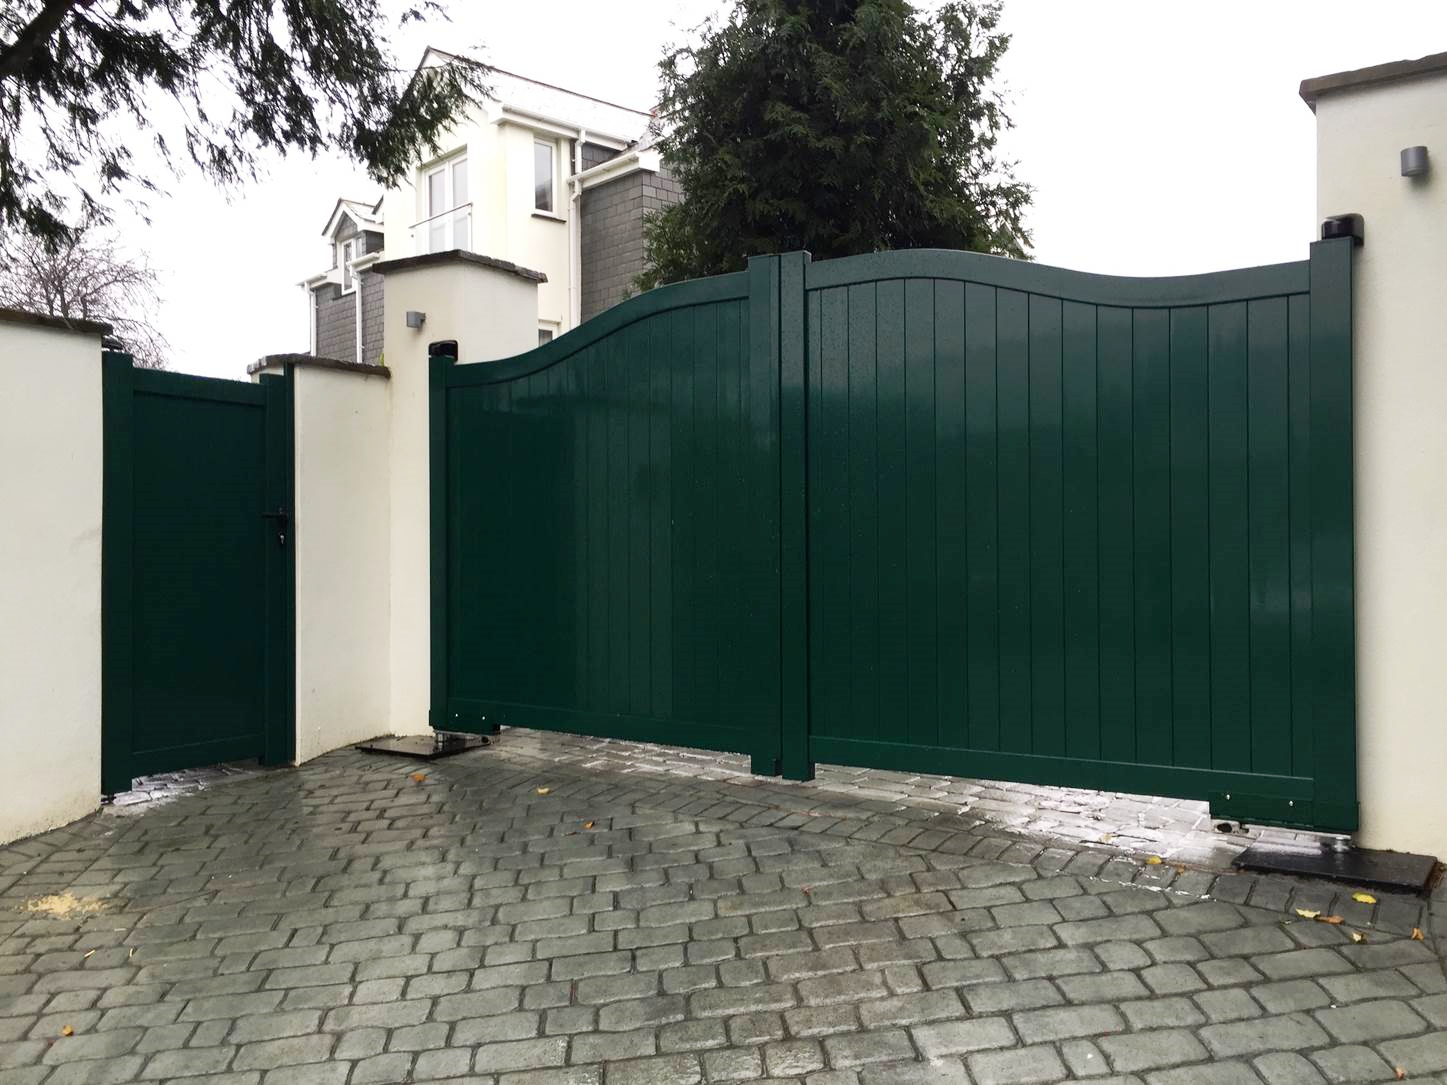 Automatic gates opening outwards on sloping drive